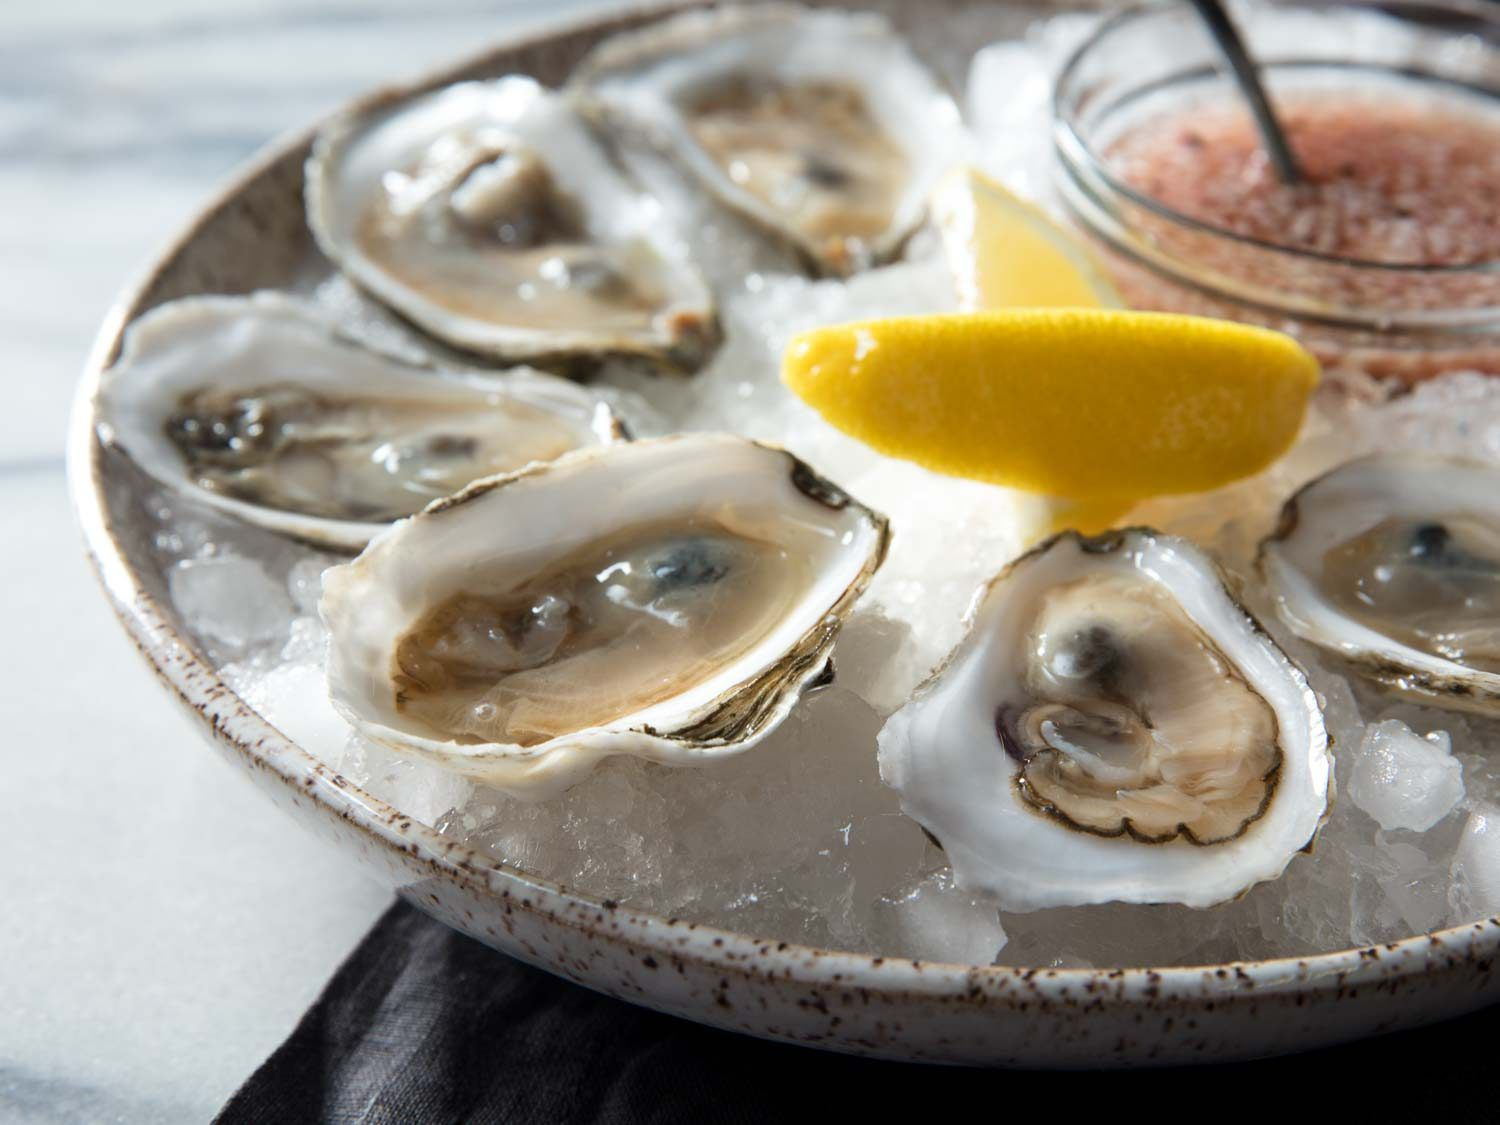 Side view of bowl of oysters with mignonette and lemon wedges